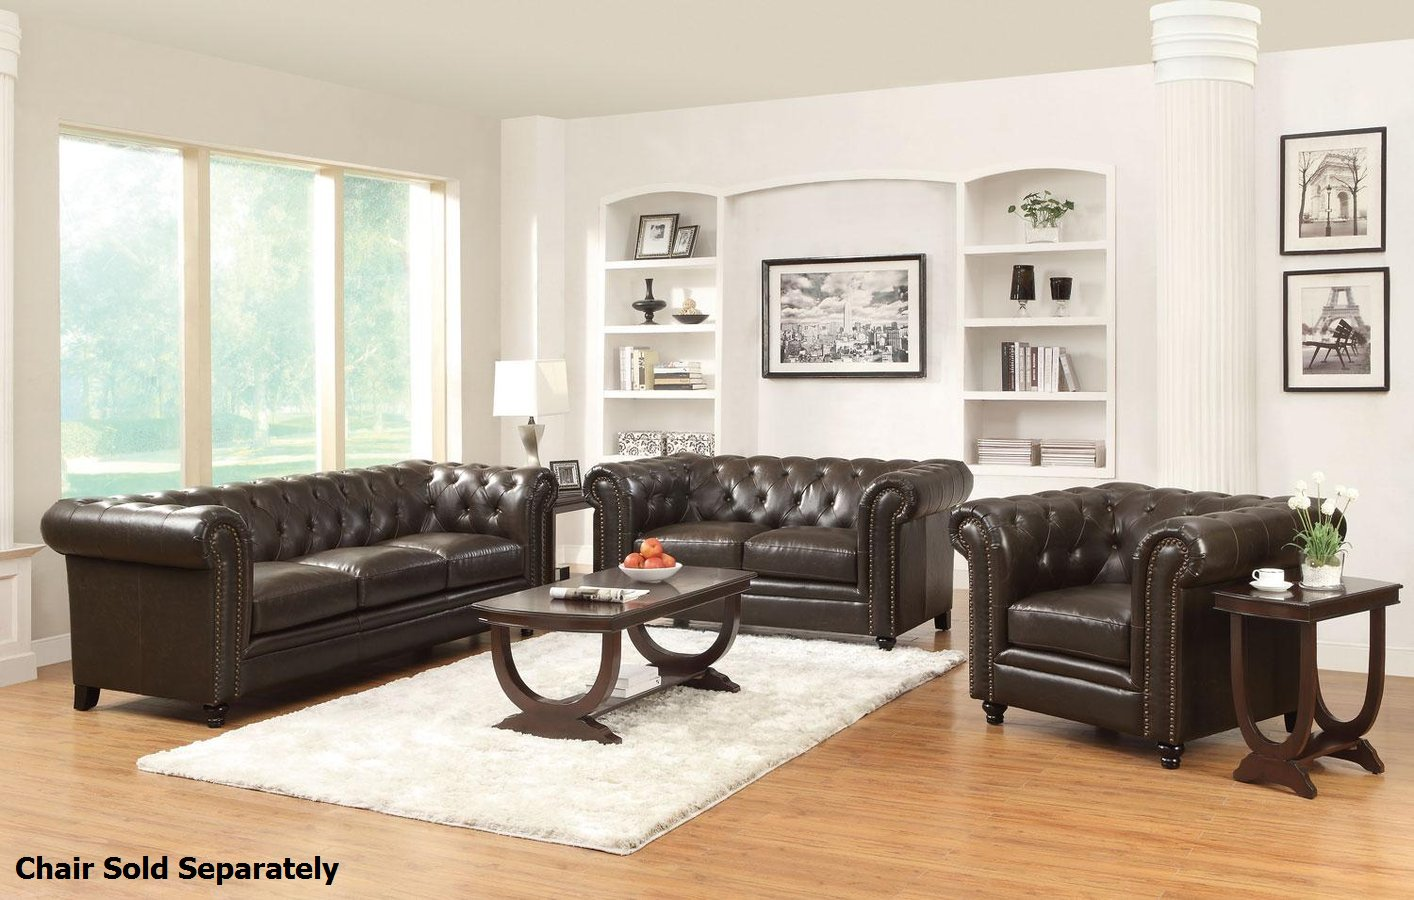 Best Kitchen Gallery: Roy Brown Leather Sofa And Loveseat Set Steal A Sofa Furniture of Leather Sofa Set  on rachelxblog.com